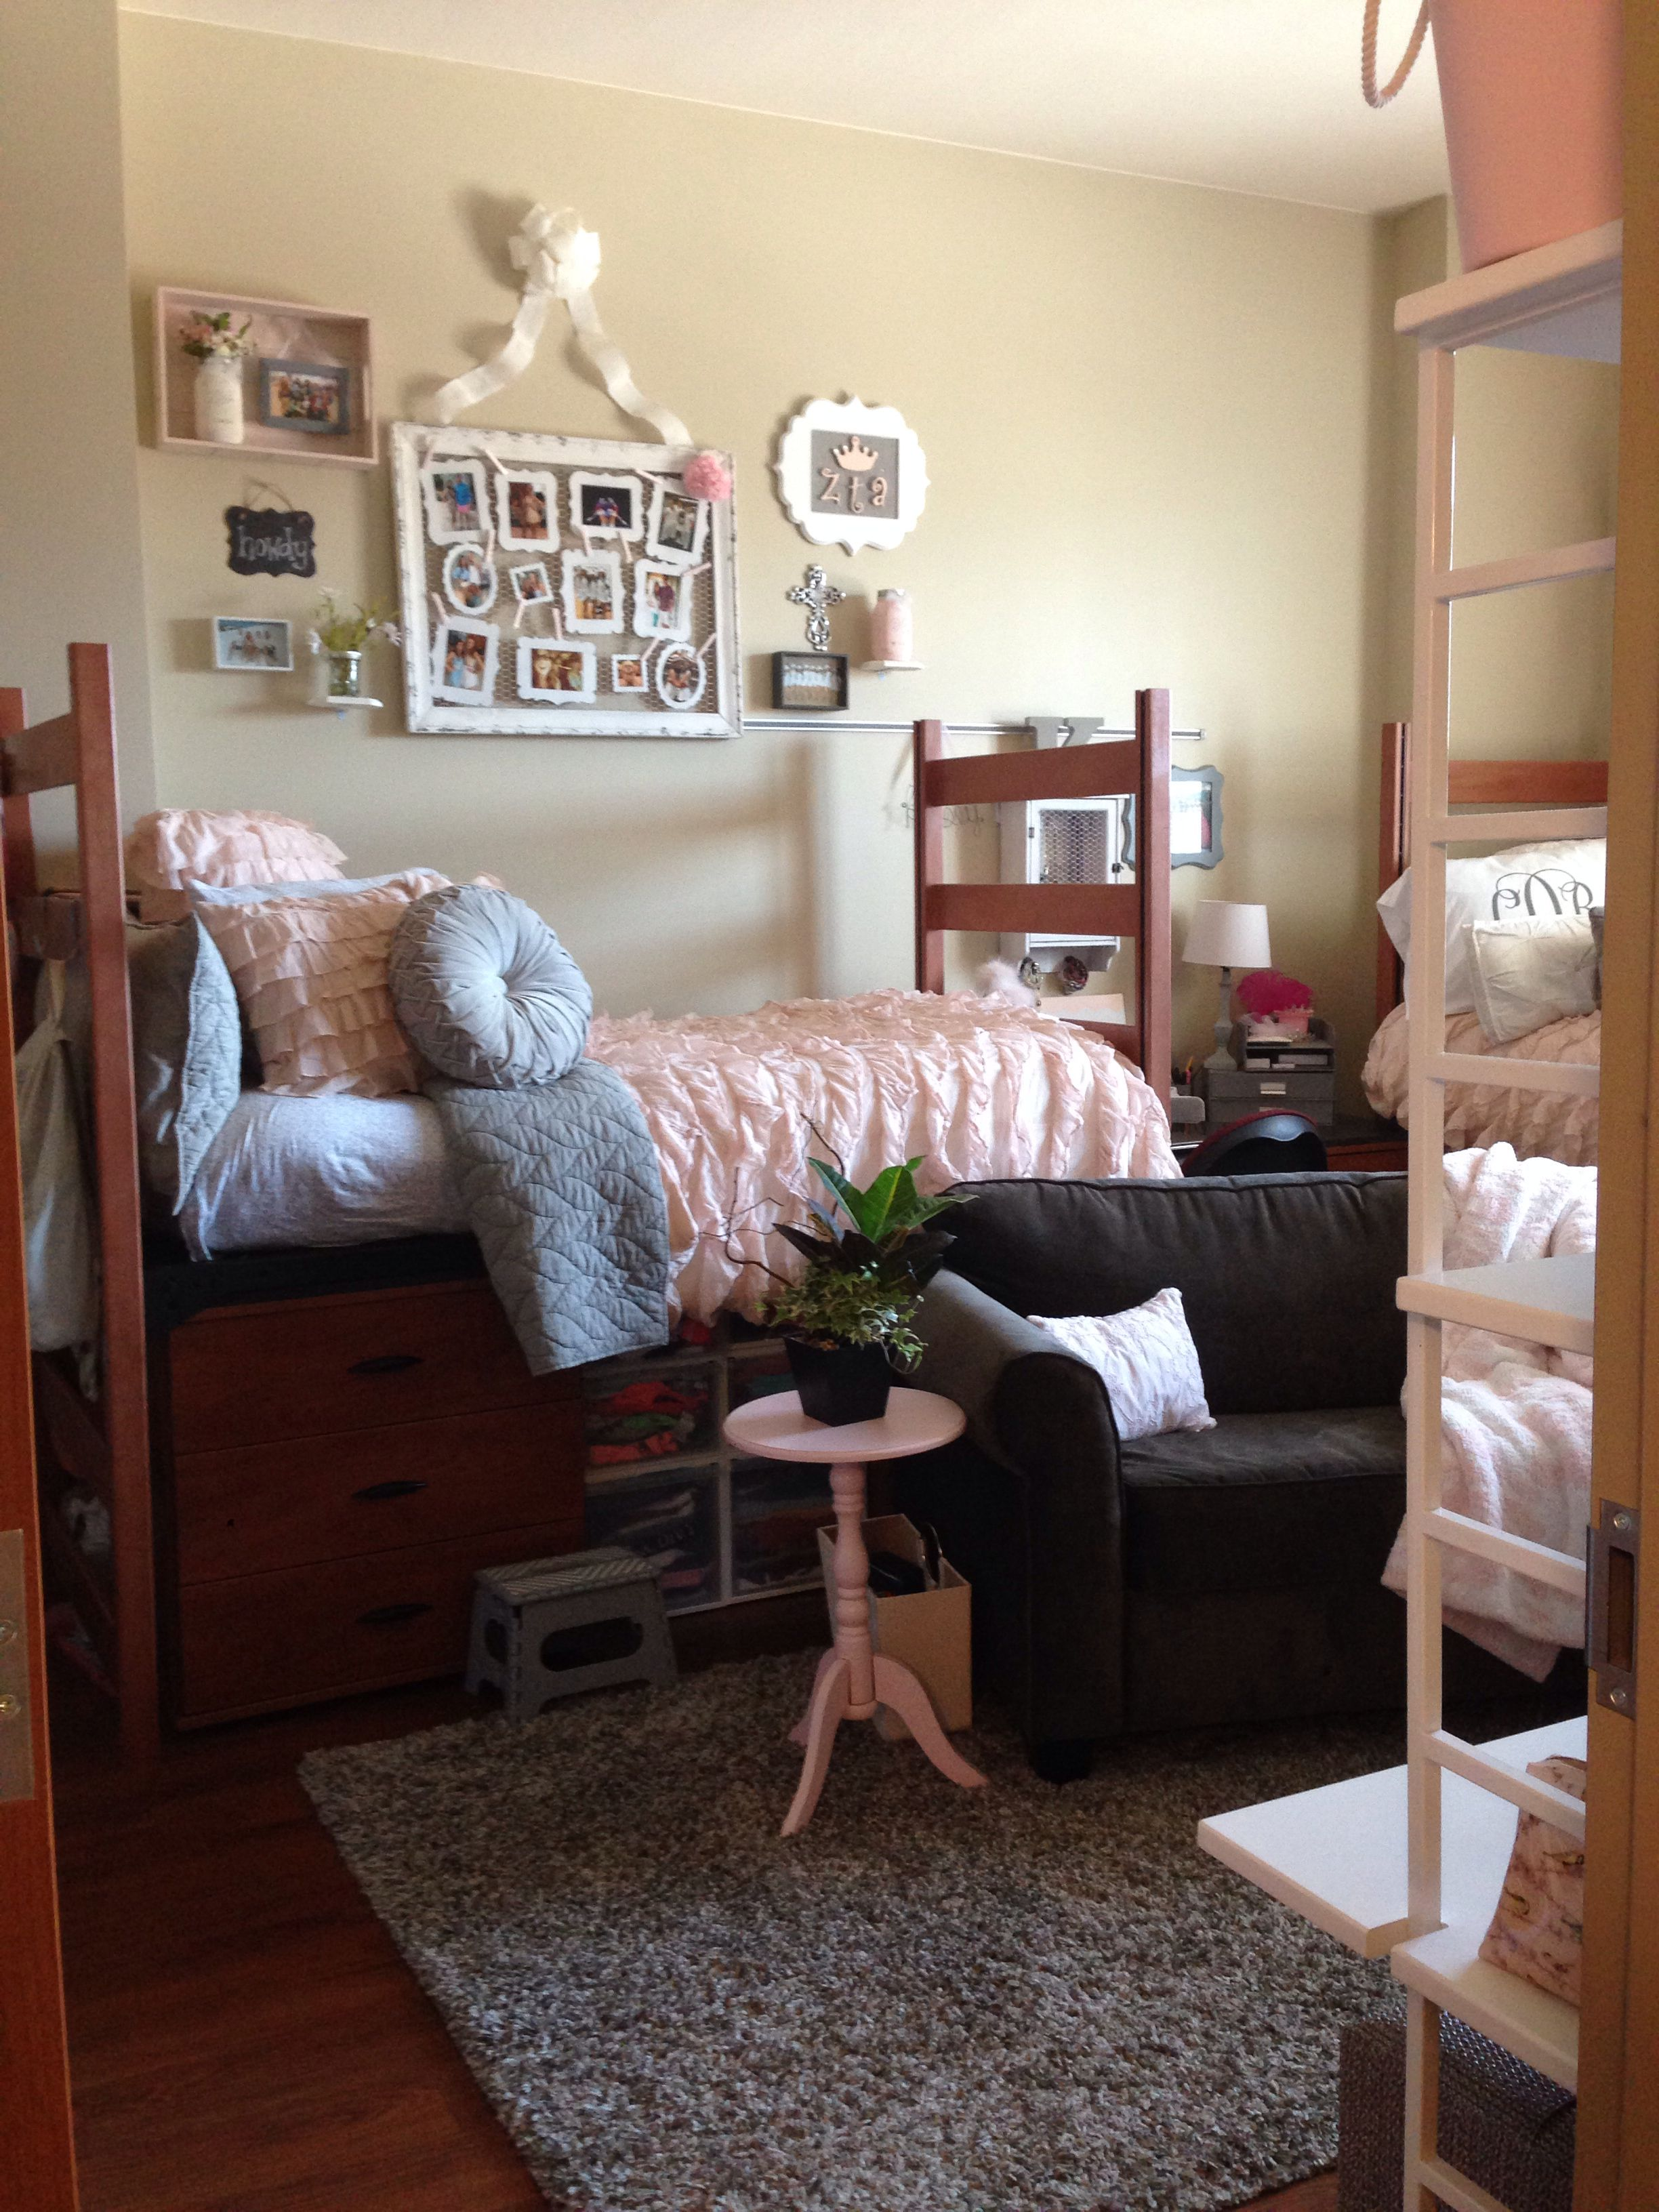 Bad Shabby Chic Shabby Chic Dorm Room Not A Bad Idea To Soften Up A Baylor